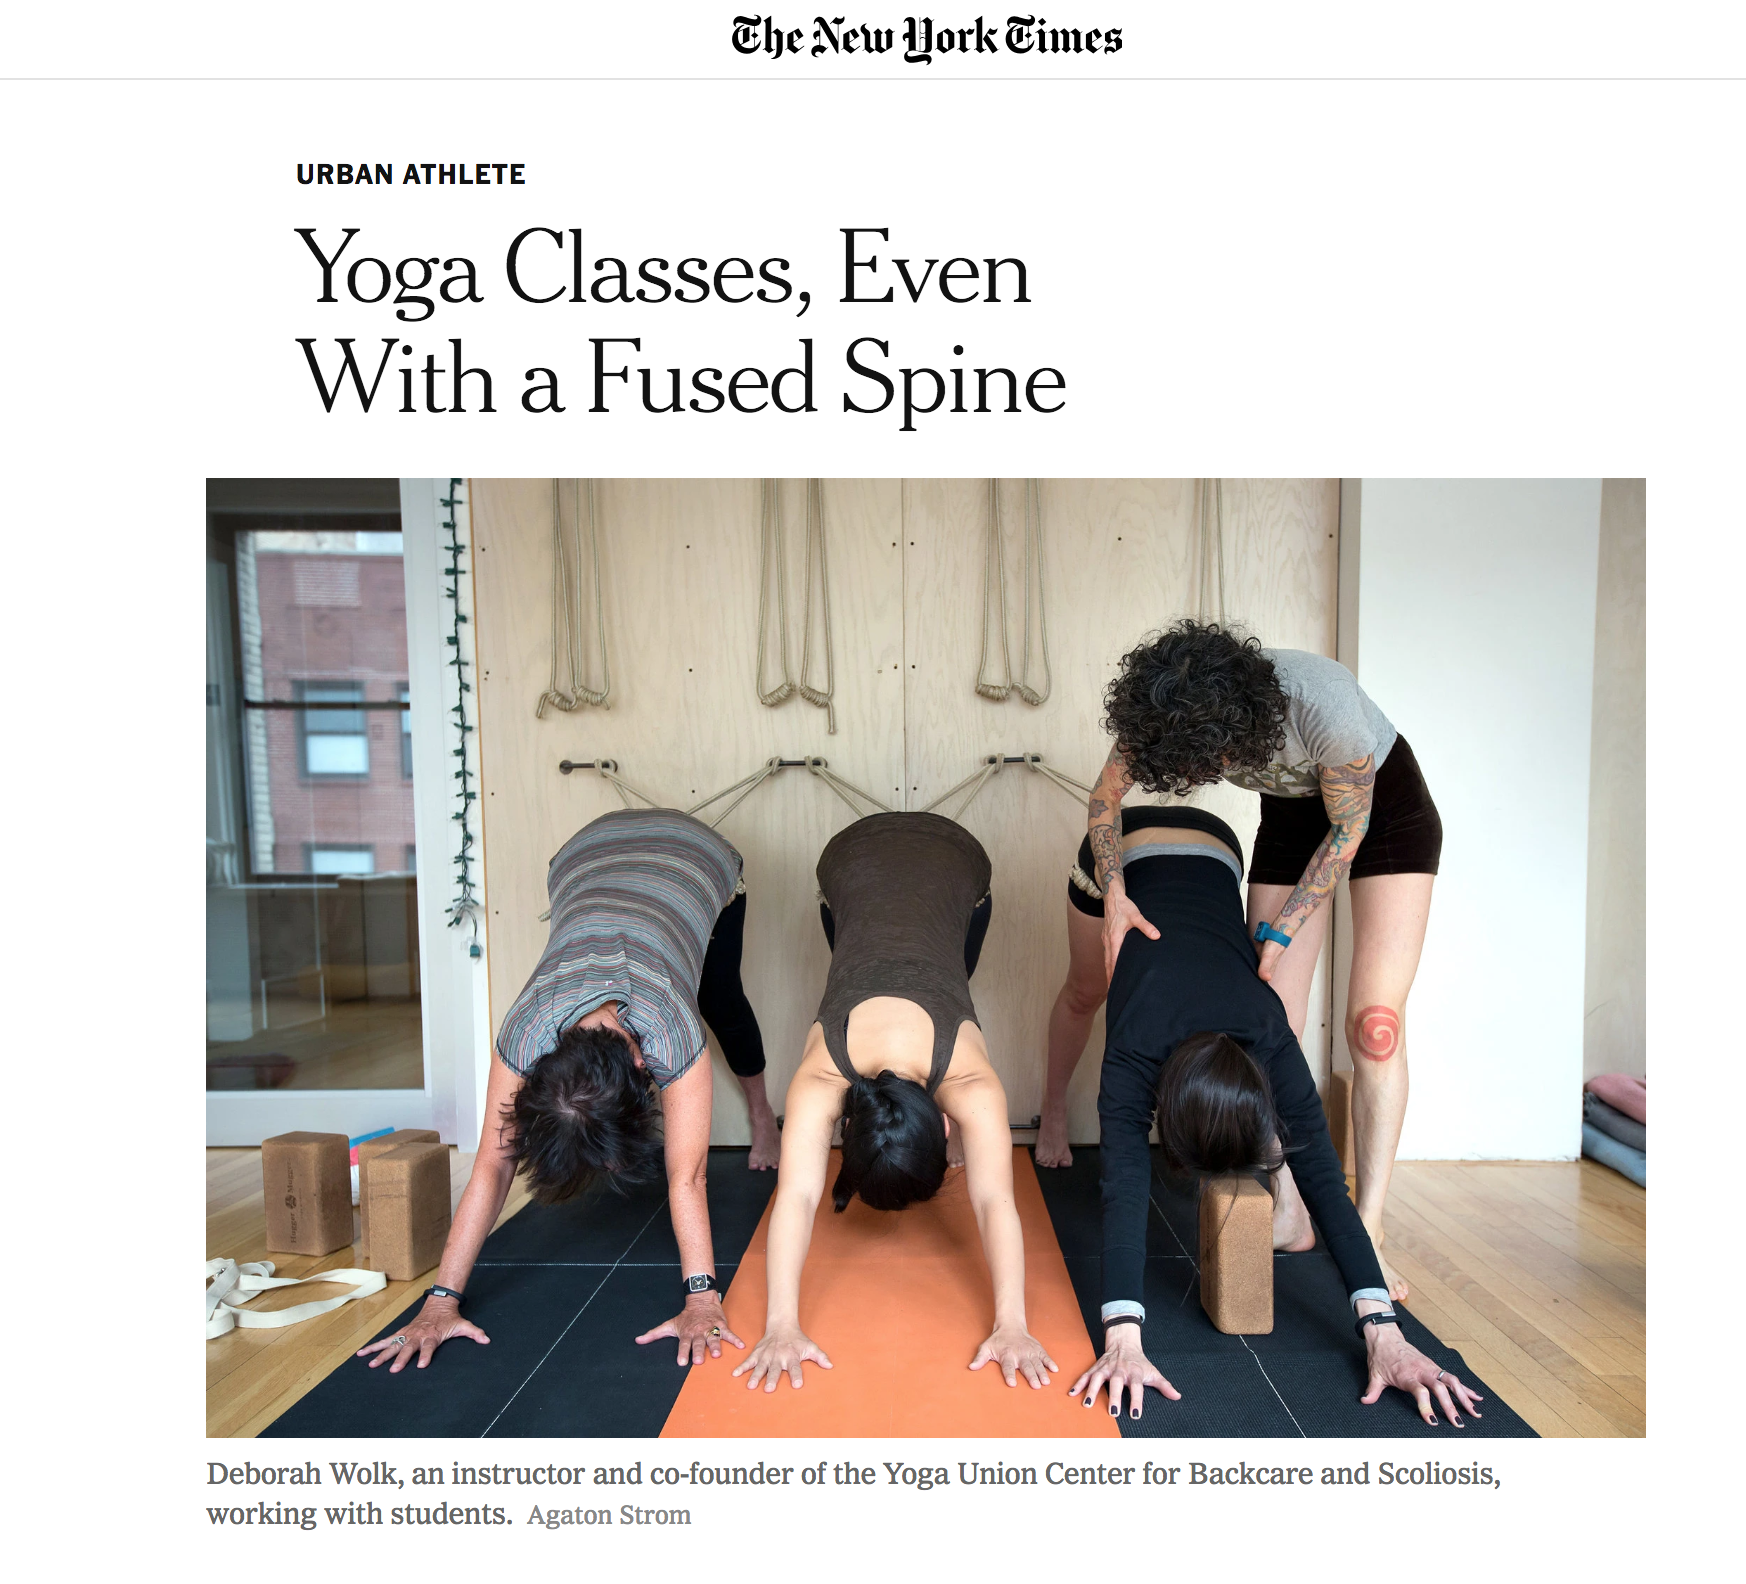 New York Times, Yoga Classes Even with a Fused Spine